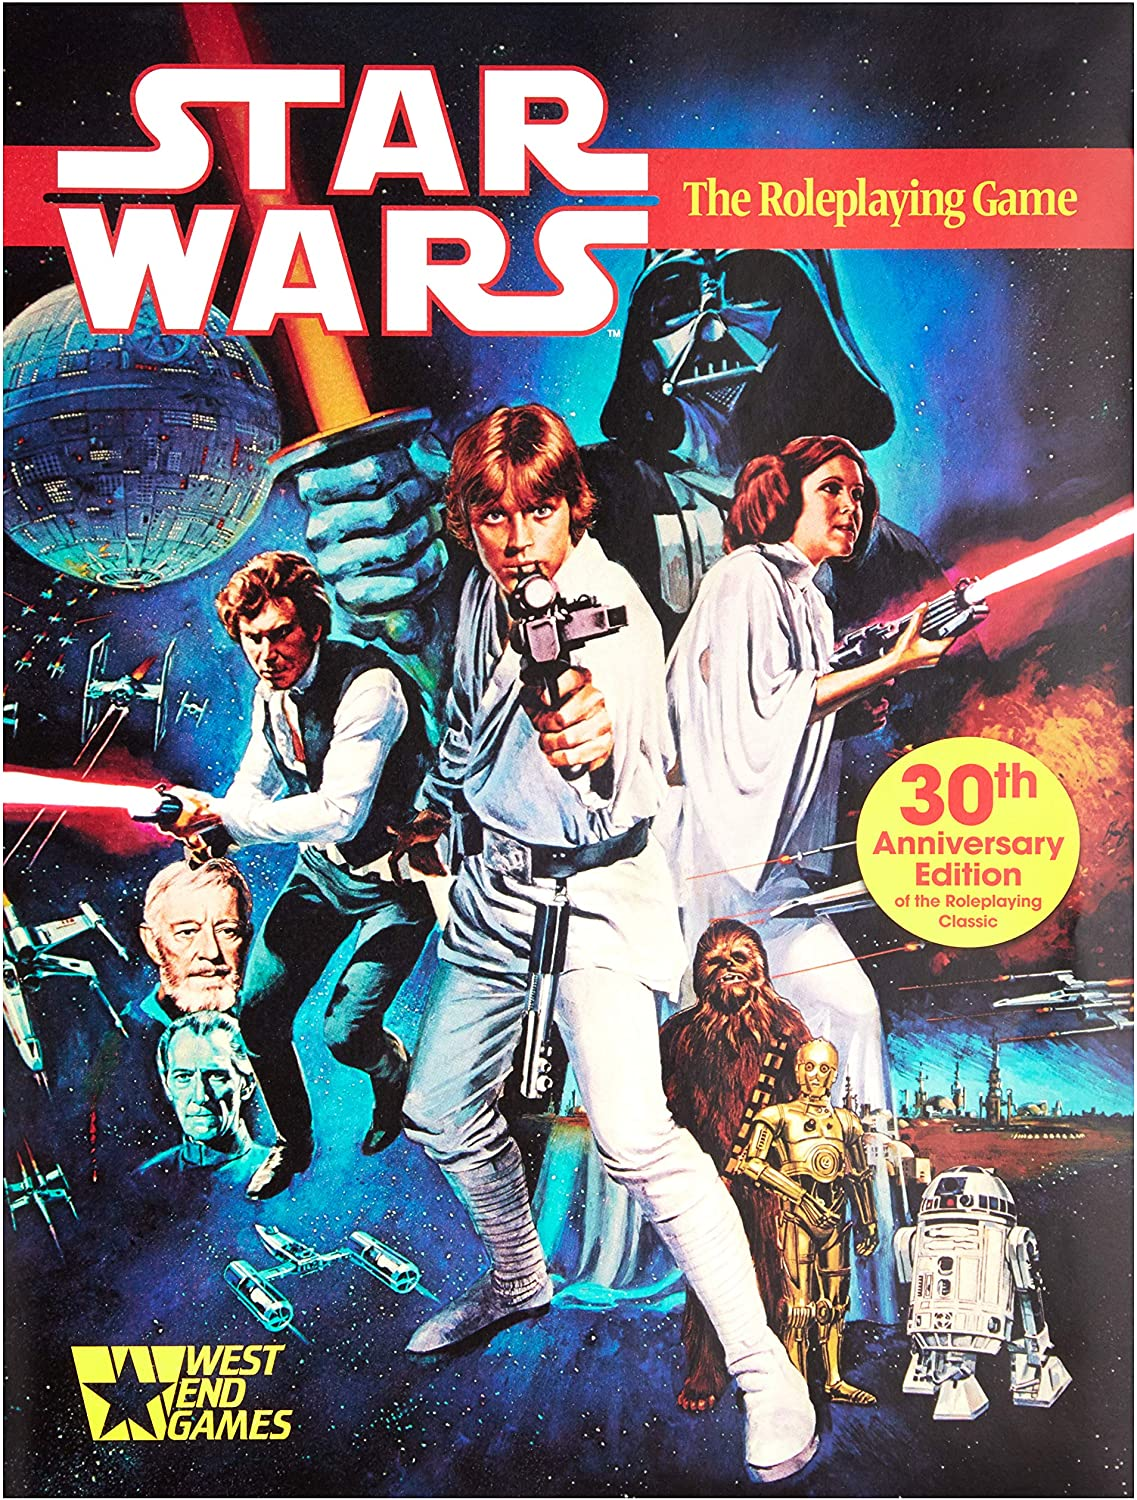 Amazon.com: Star Wars: The Role Playing Game Anniversary: Toys & Games